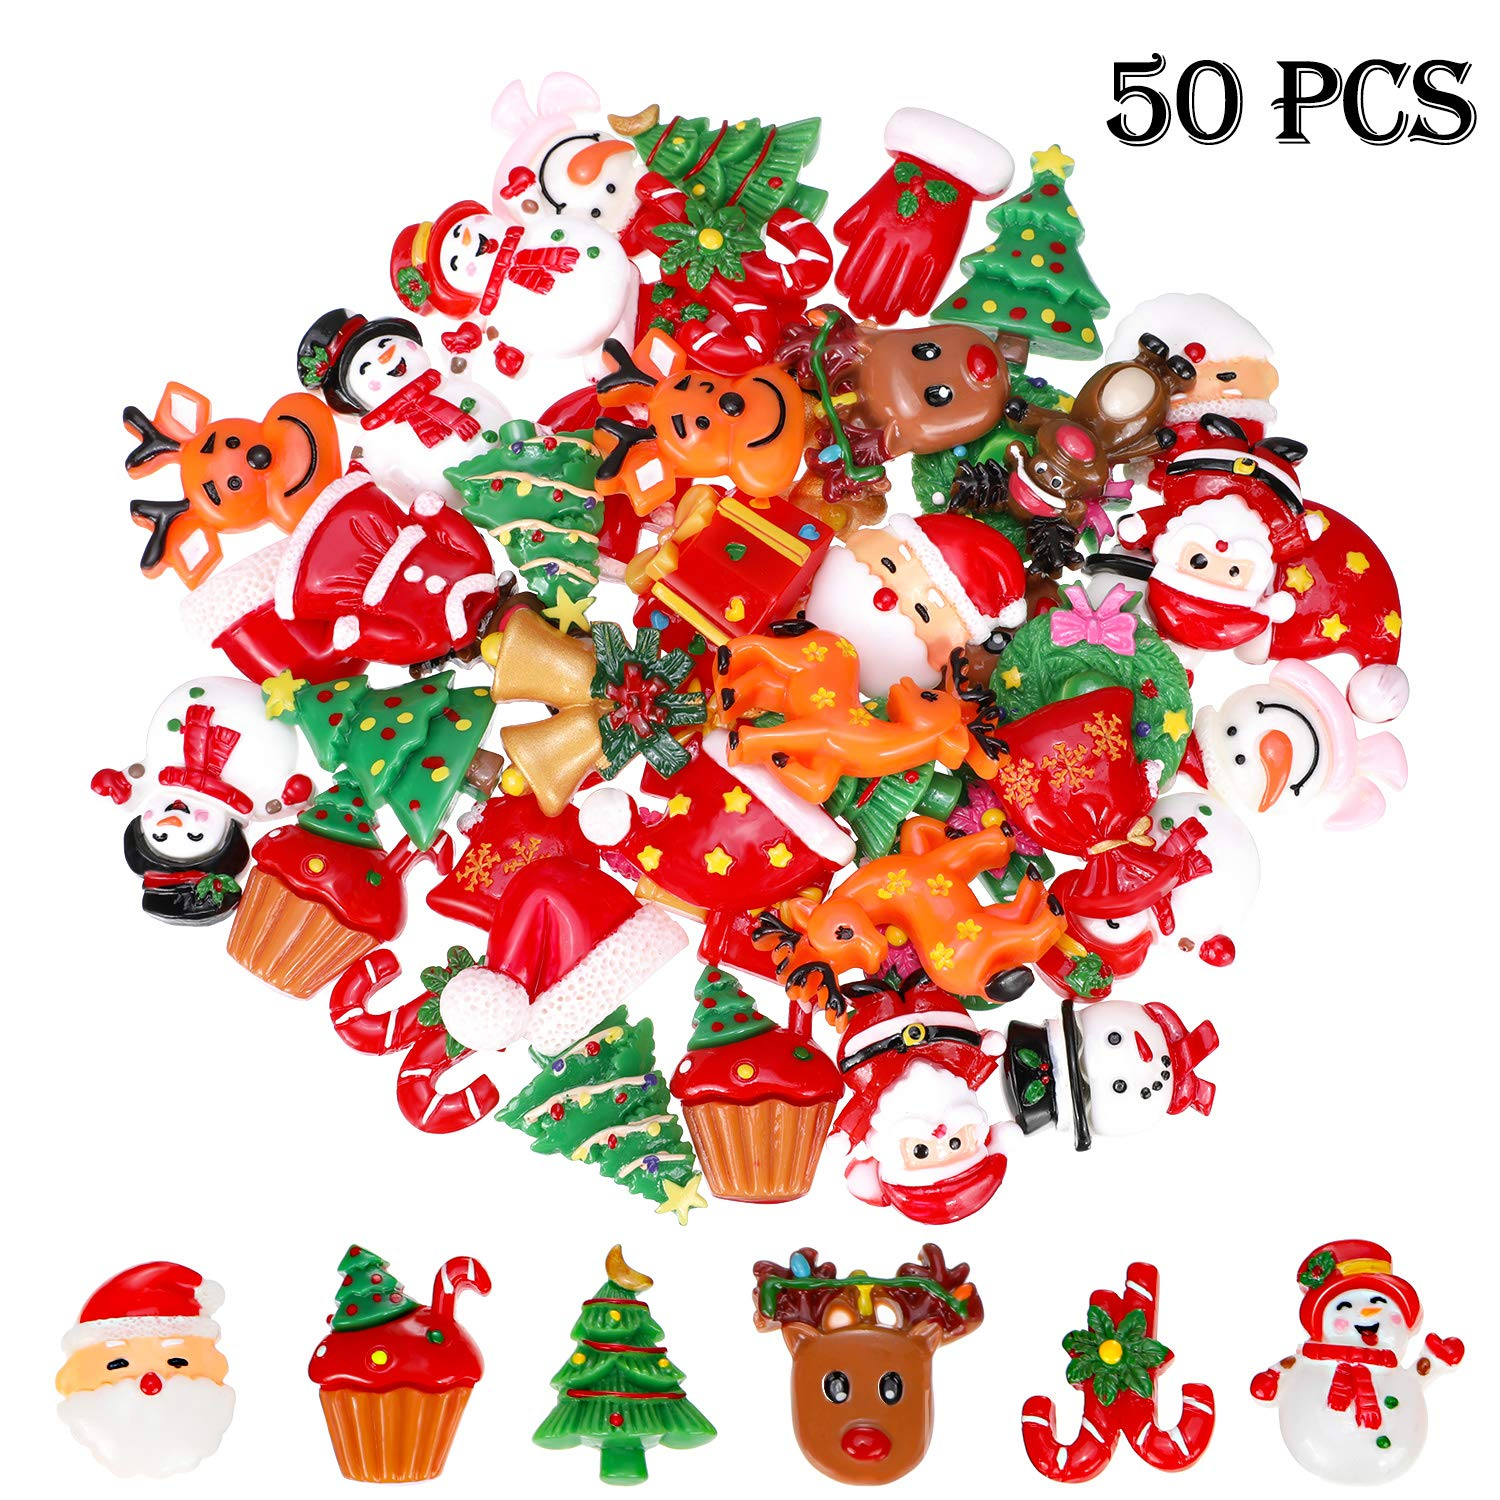 50 Pieces Flat Back Buttons Christmas Resin Flatback Resin Button Craft Embellishments For Diy Crafts Making Scrapbooking Decoration